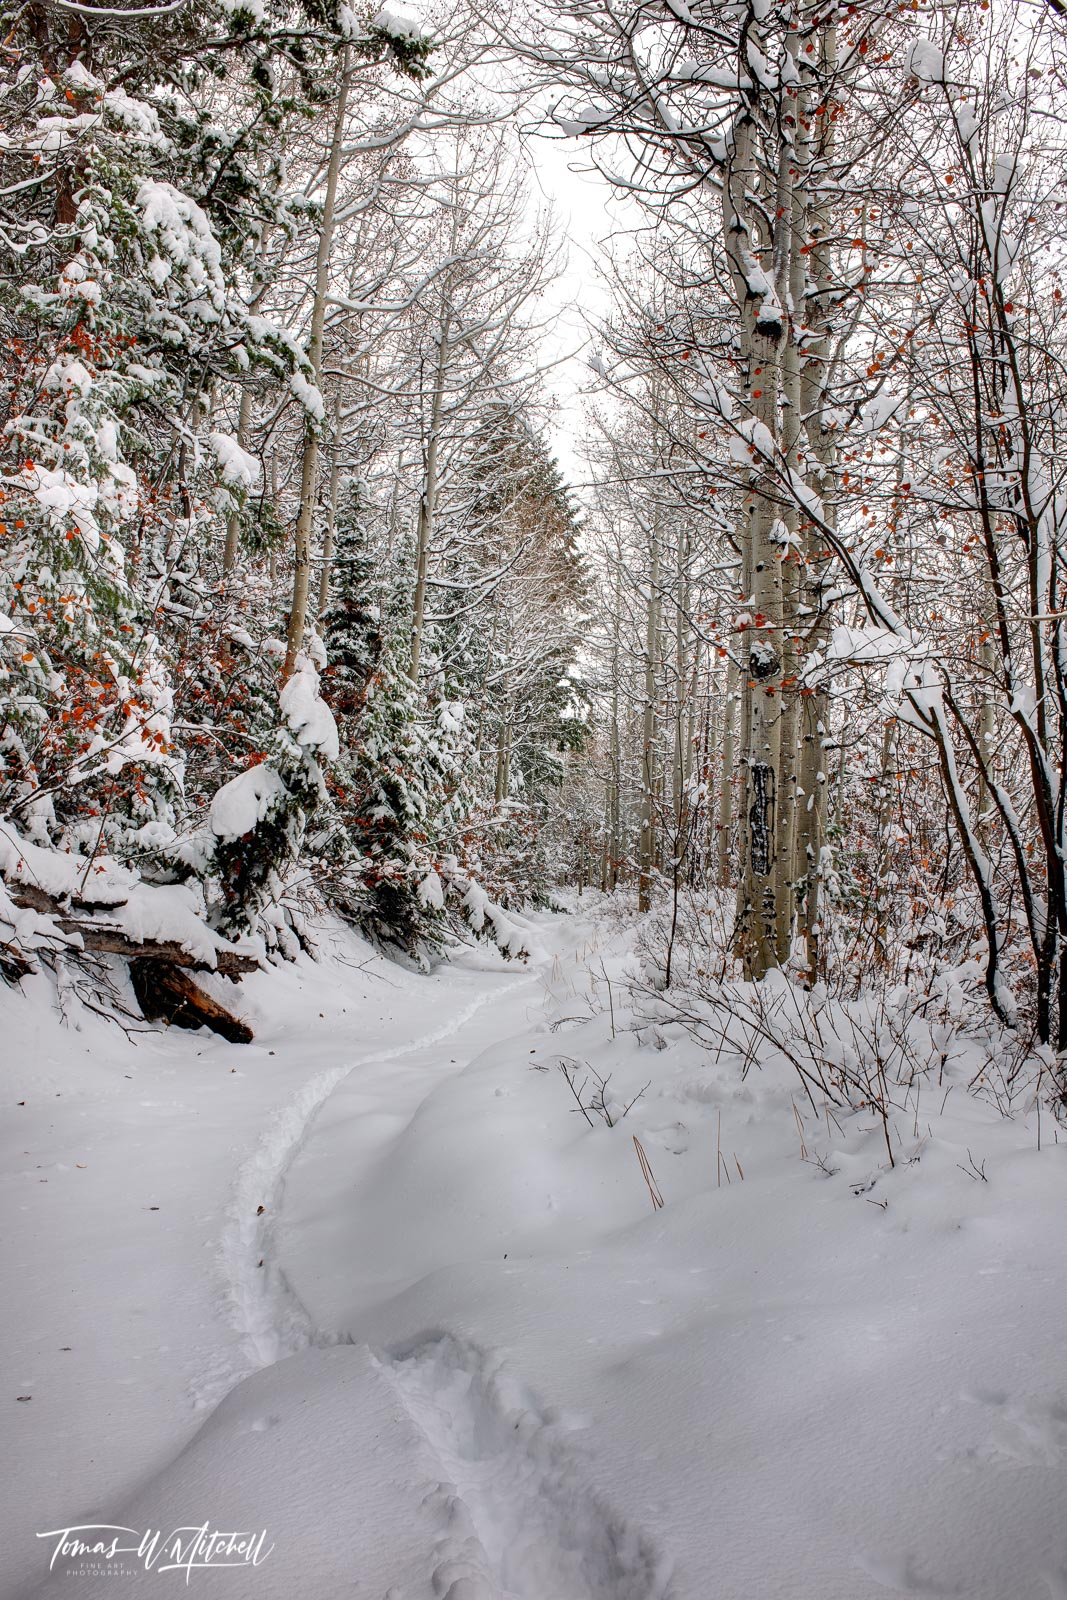 limited edition, fine art, prints, photograph, winter, UINTA-WASATCH-CACHE NATIONAL FOREST, UTAH, snowstorm, tracks, stream, leaves, red, trees, snow, forest, nature, photo